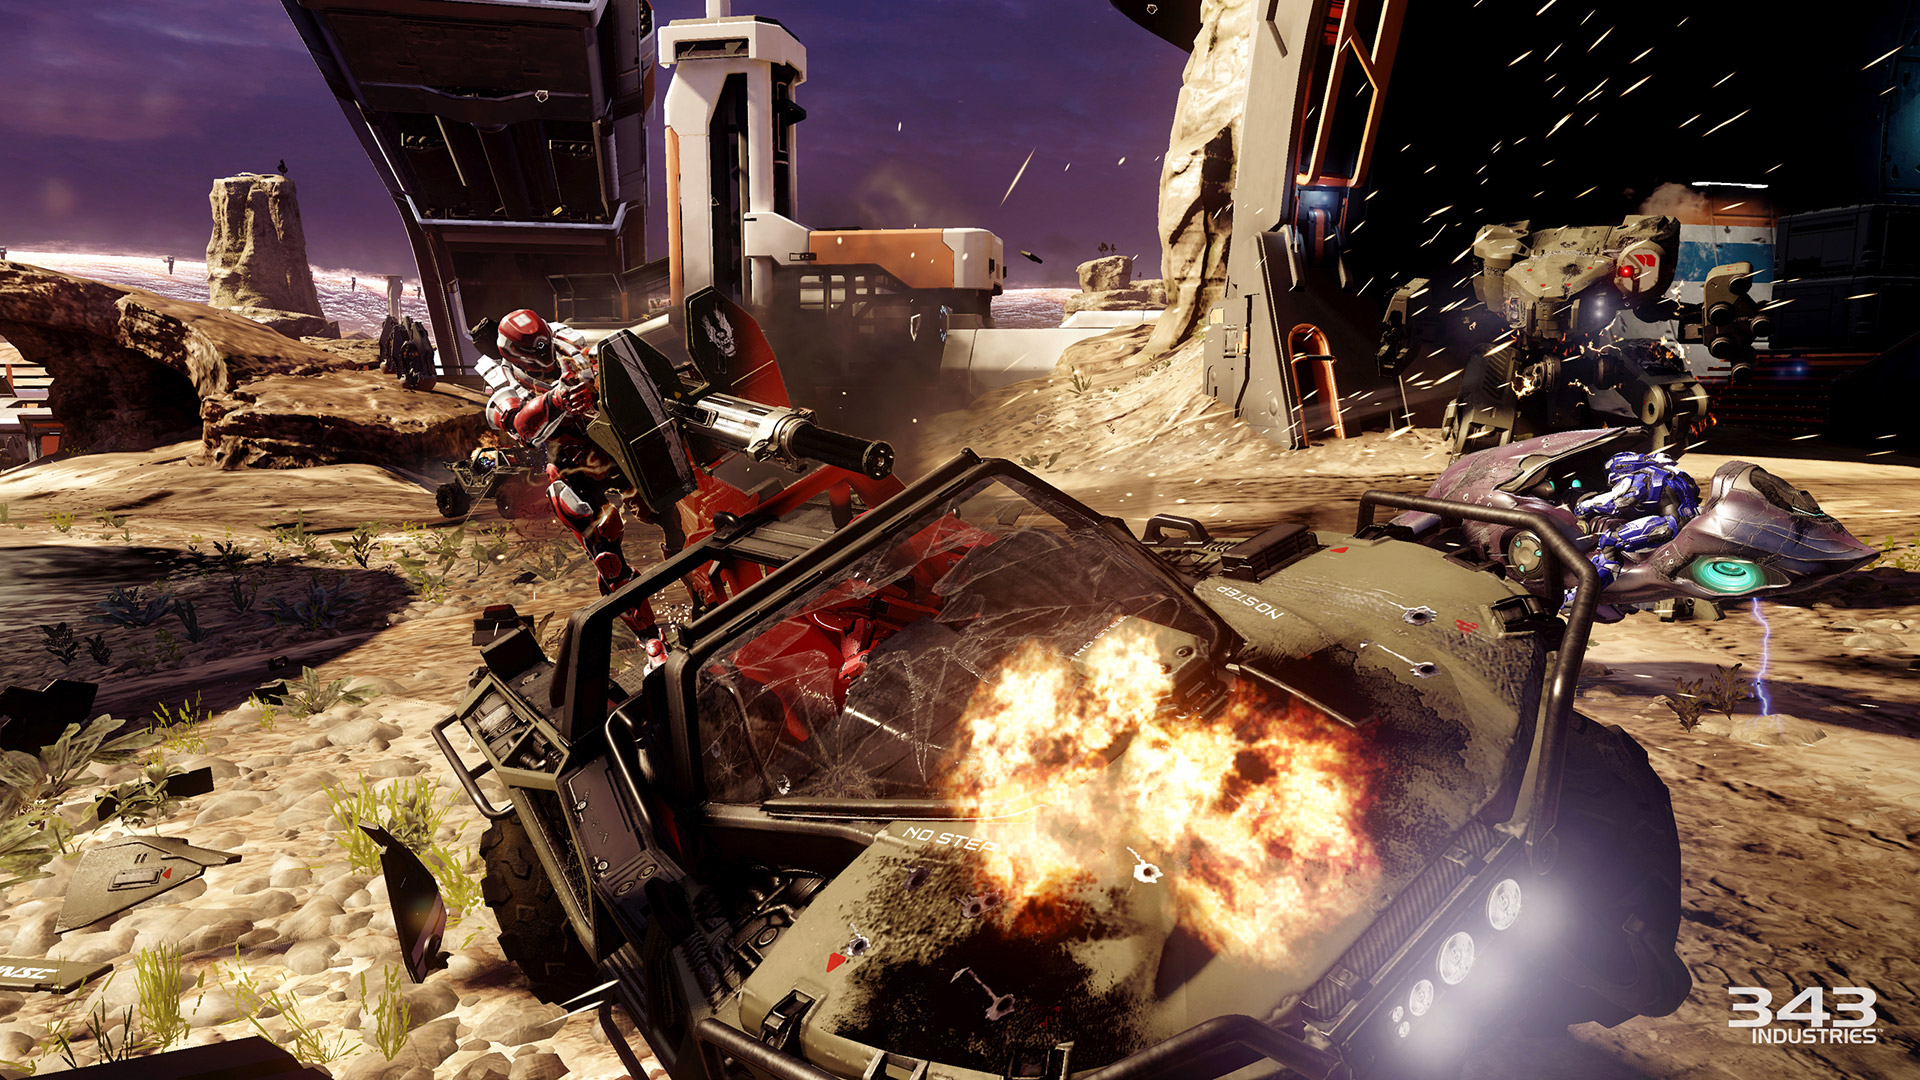 """A snapshot of the Halo 5: Guardians warzone, """"a brand new, massive-scale multiplayer mode that supports 24-player battles,"""" according to the video game  website . (Courtesy/ Halo 5: Guardians )"""